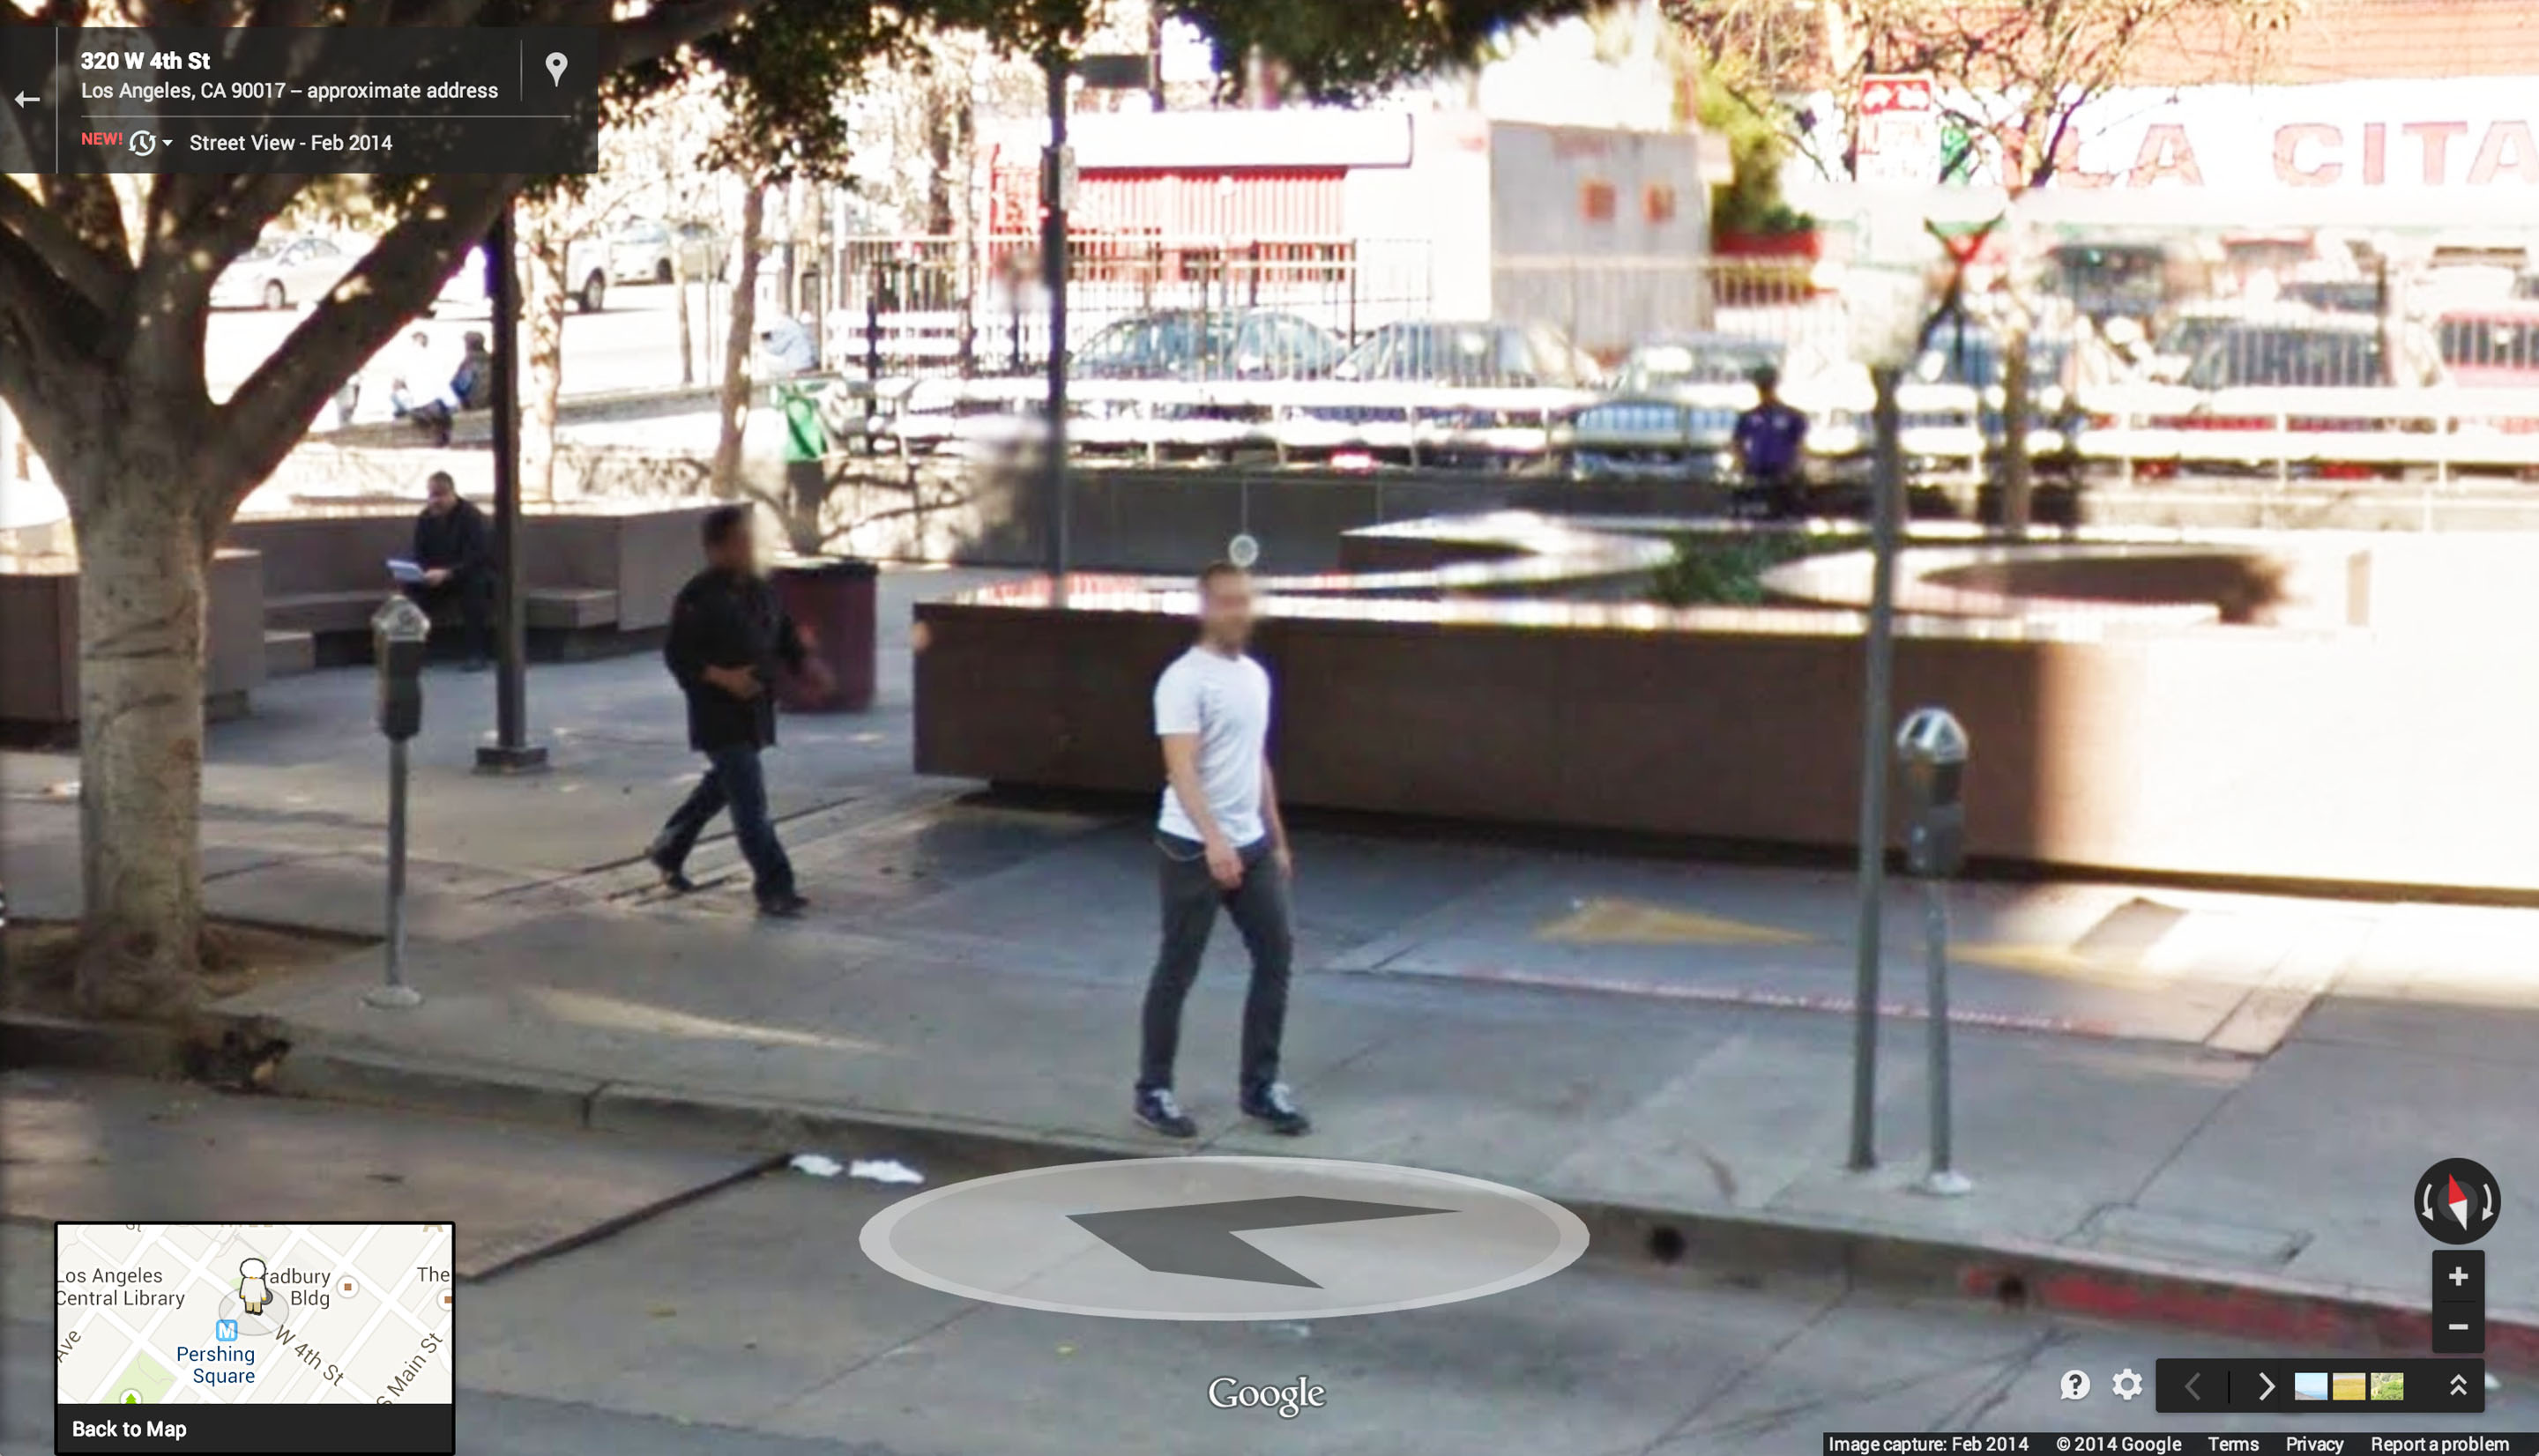 An image of Ian Besler taken from a Google Street View capture of Downtown Los Angeles in 2014.